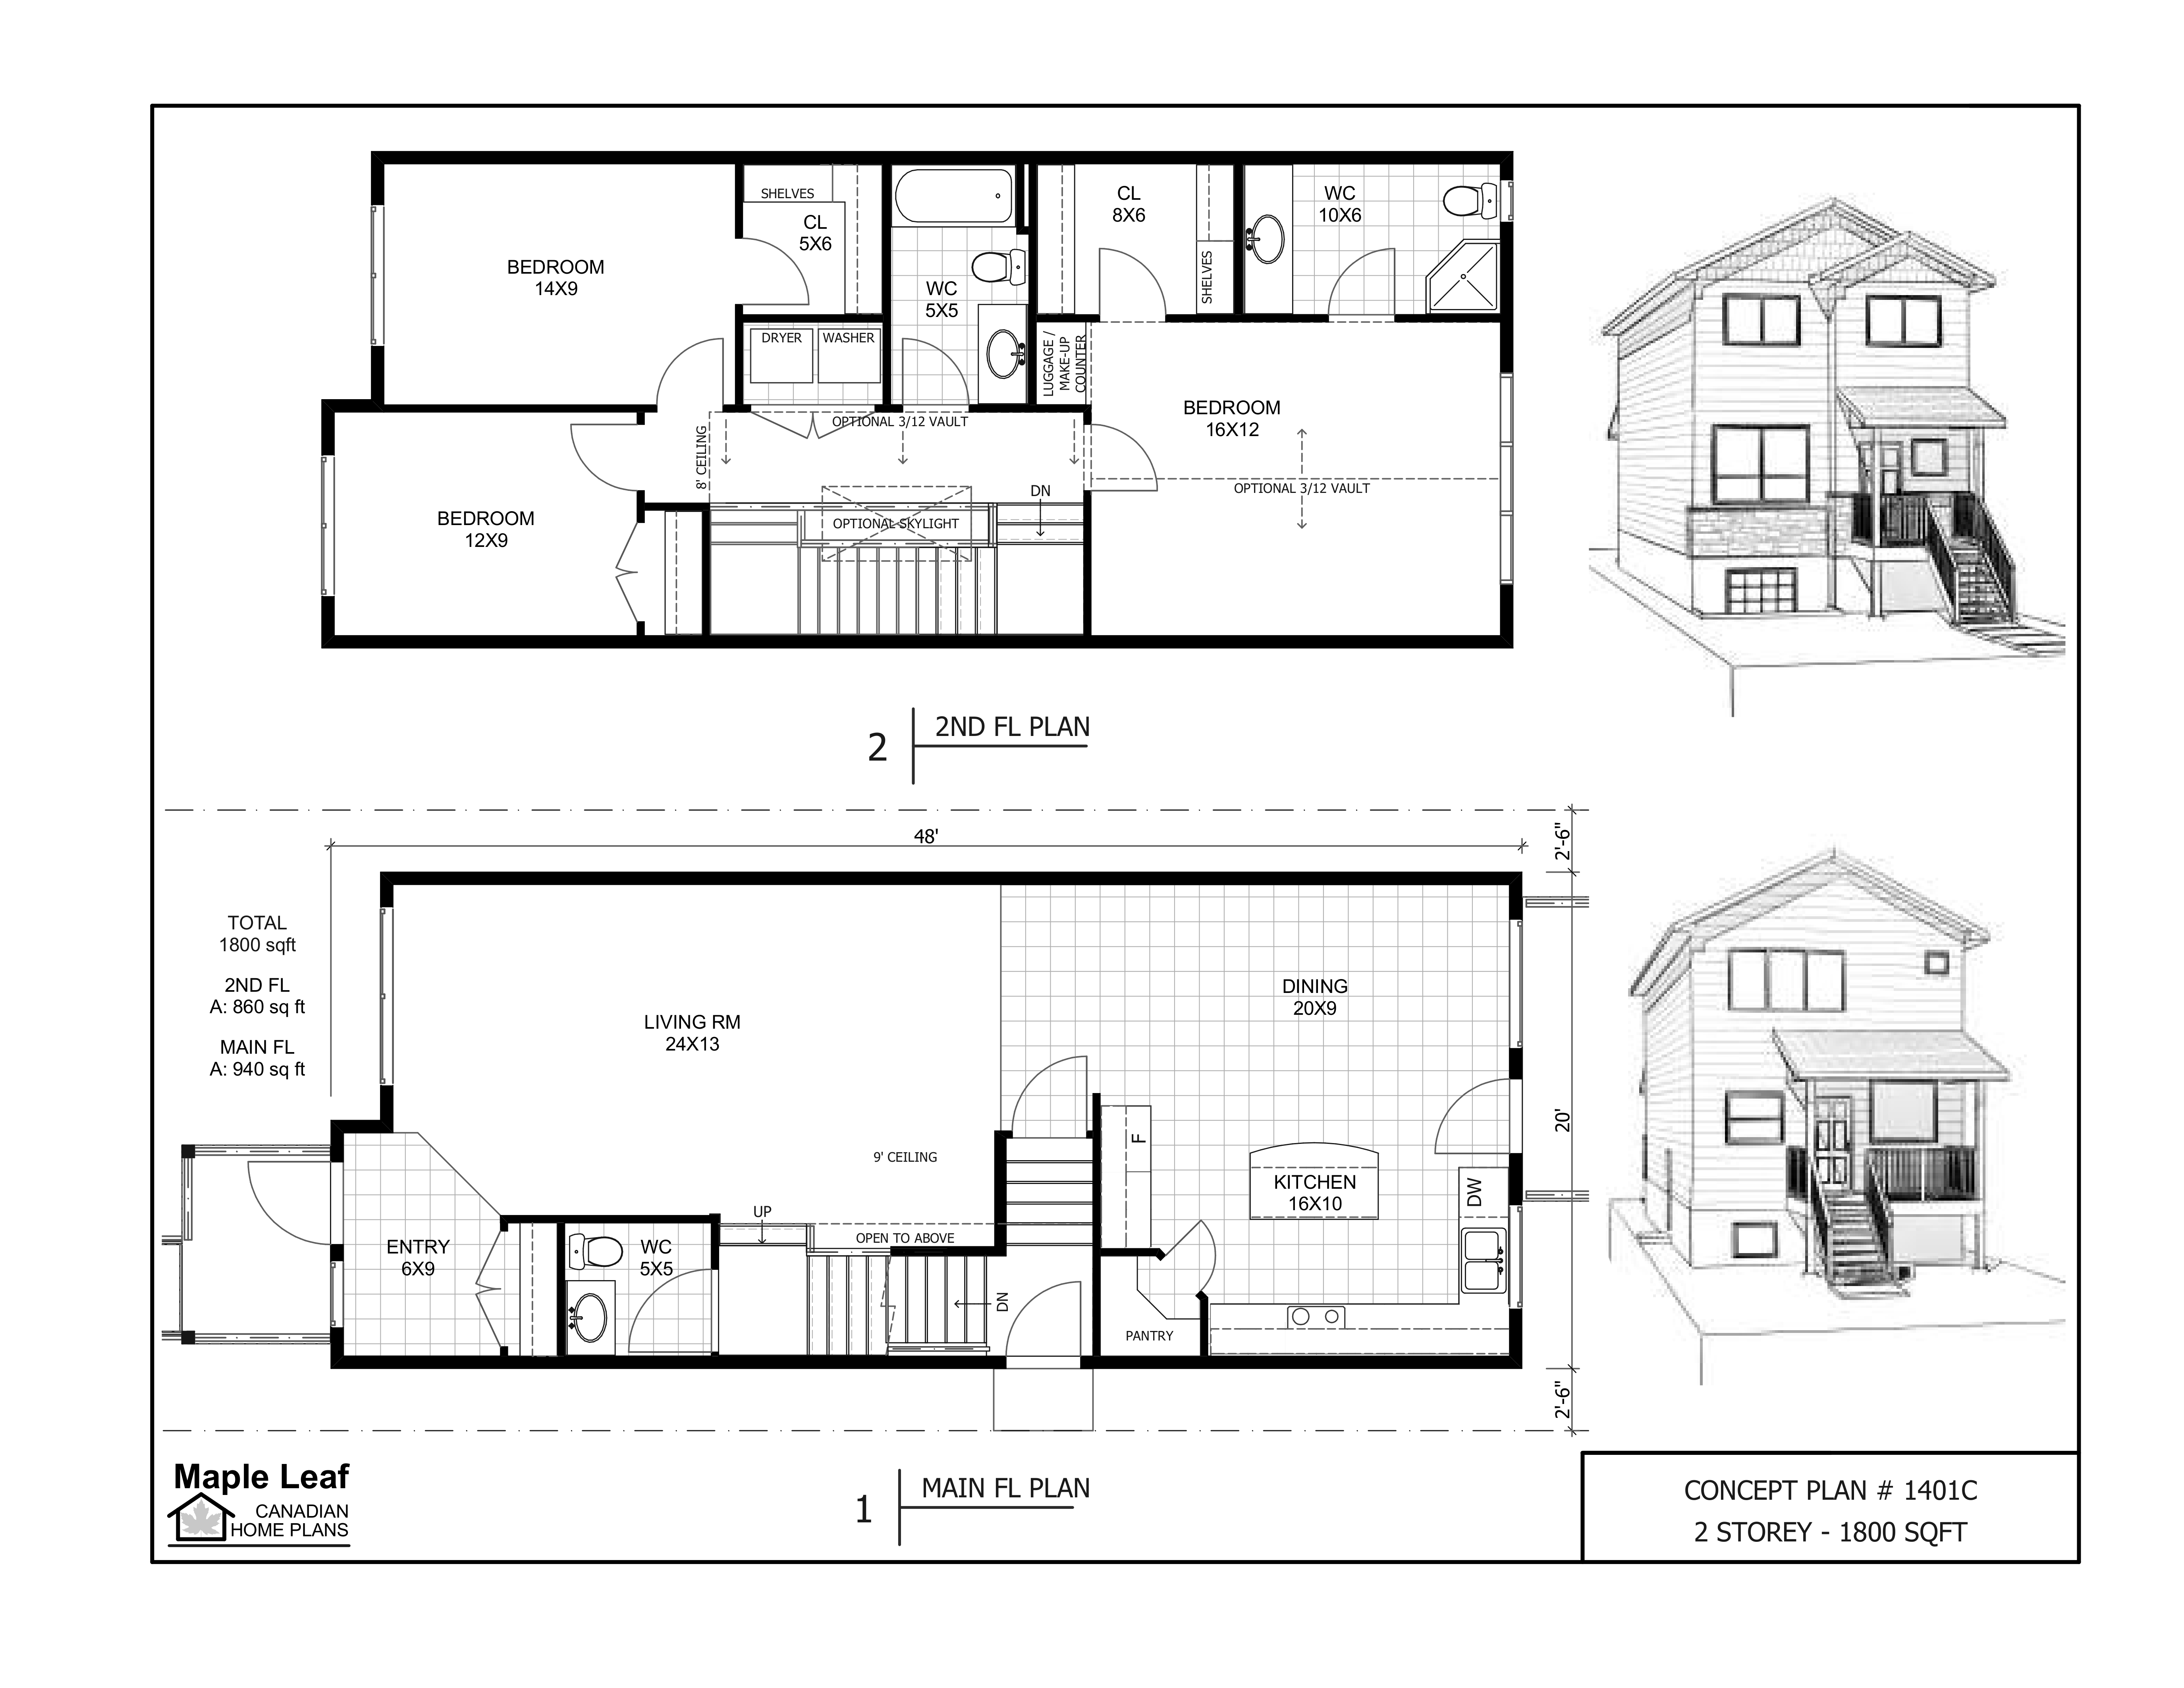 MLCHP 1401C CONCEPT 2 STOREY 1800SQFT 25 FT LOT